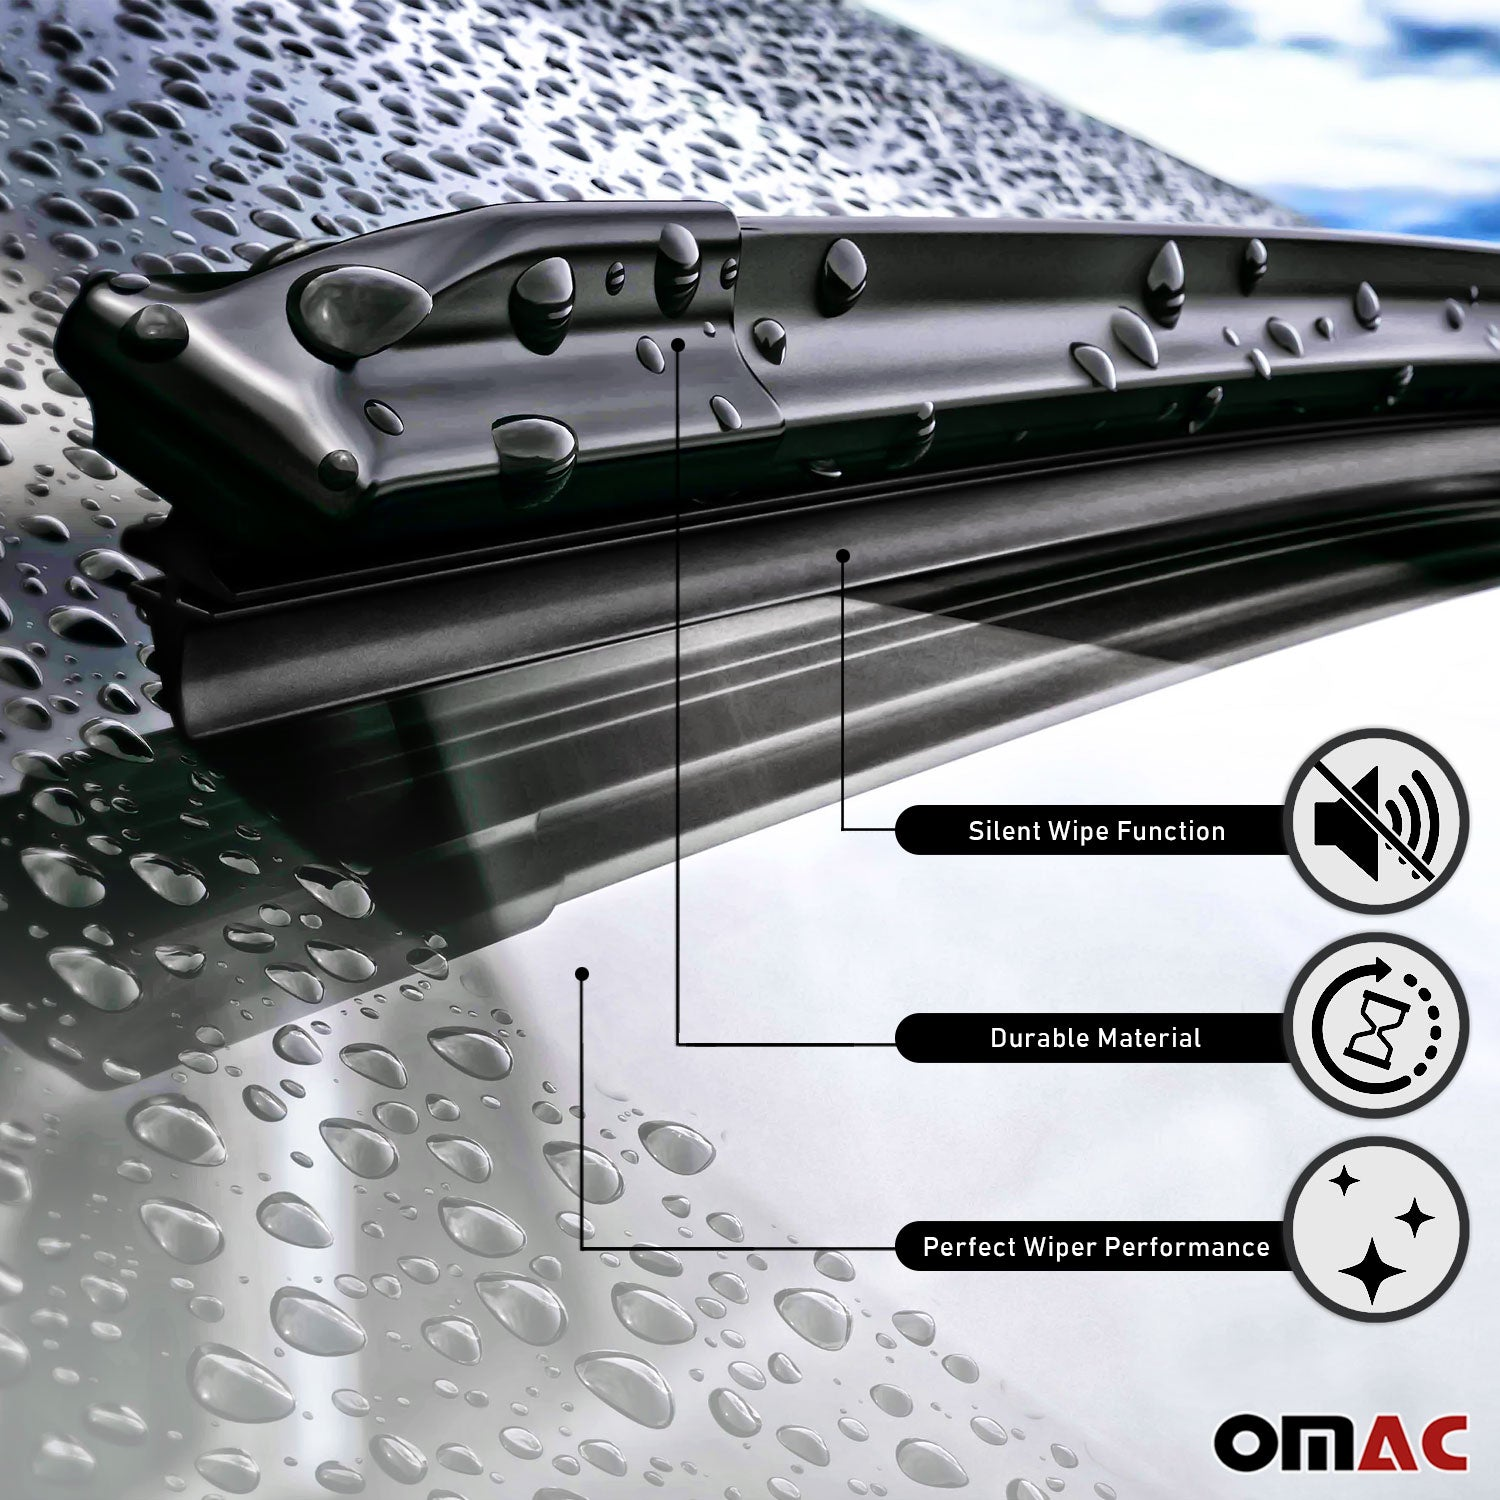 "OMAC Premium Wiper Blades 14"" & 24'' Combo Pack for Chevy Spark 2016-2020"